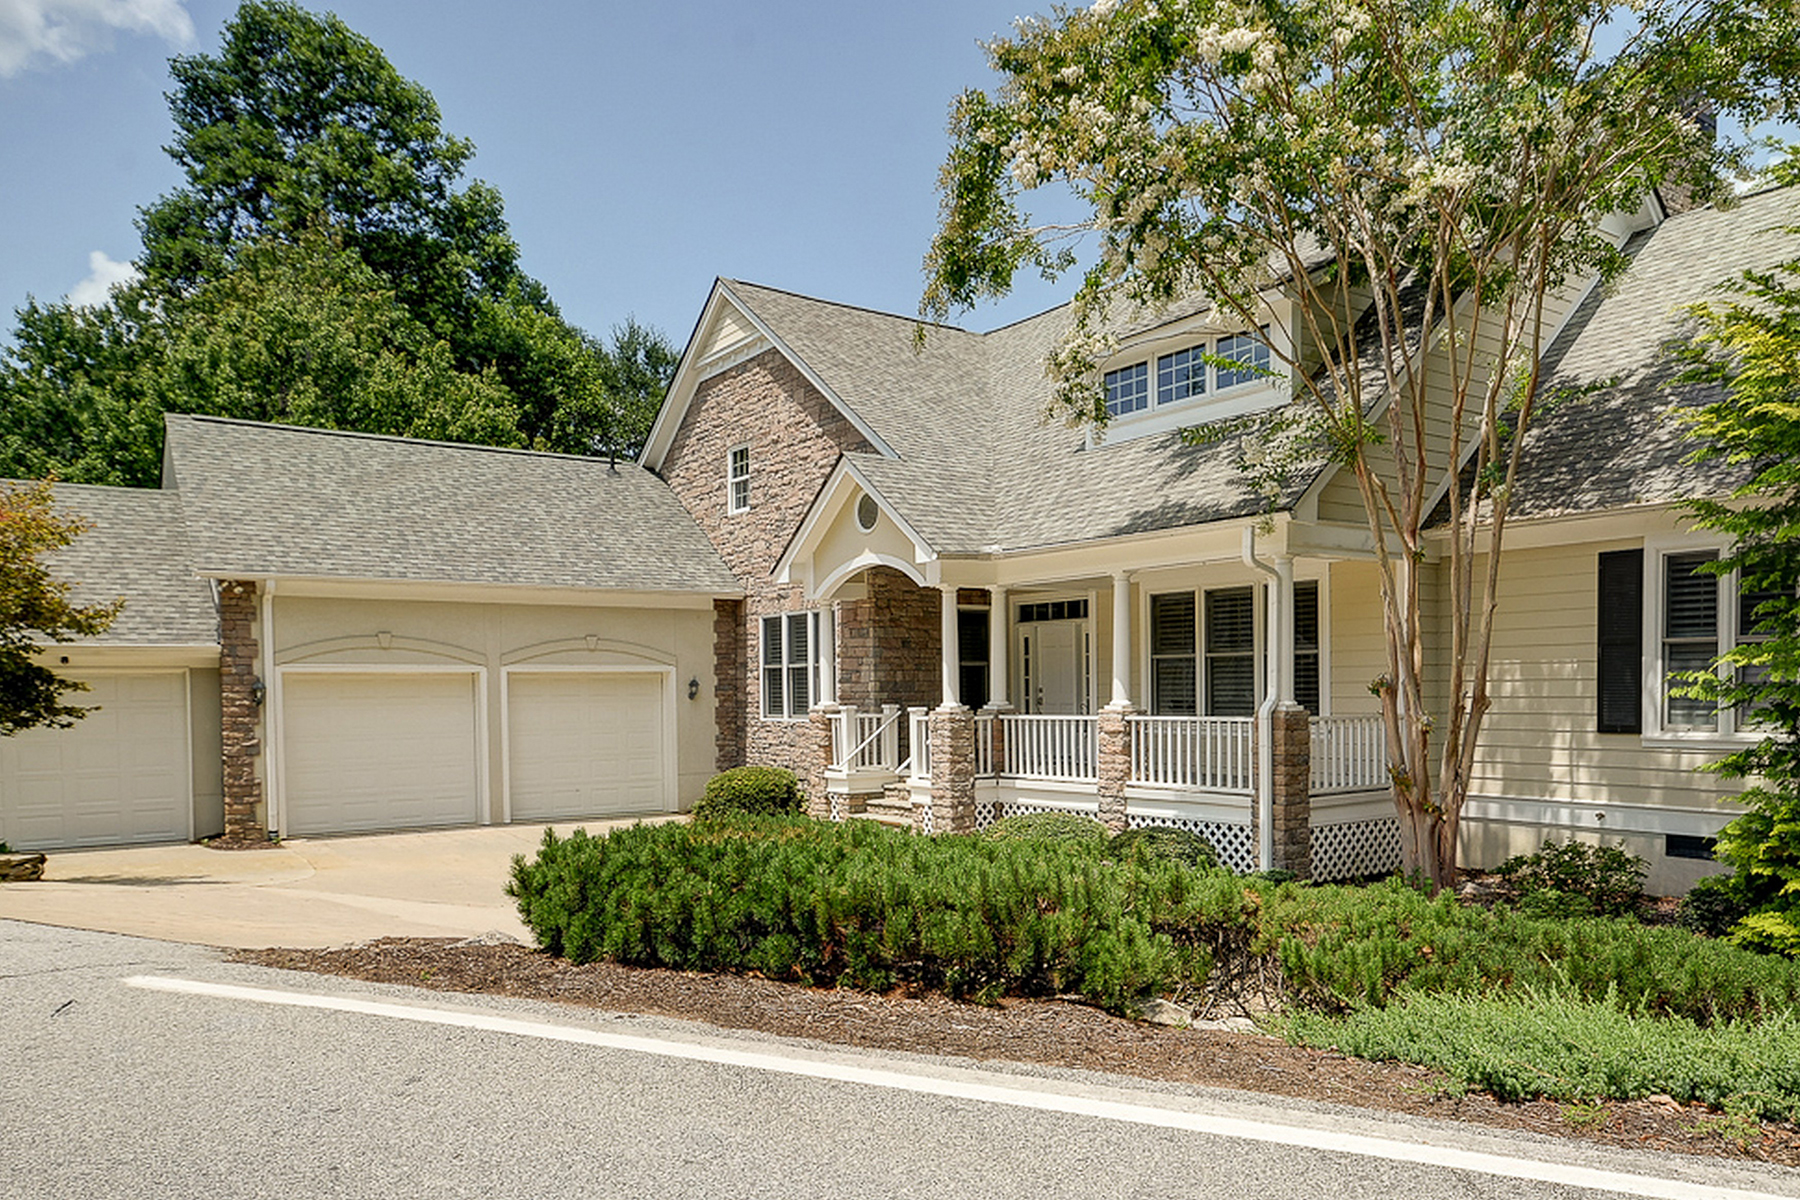 Single Family Home for Sale at THE CLIFFS AT GLASSY 3 Soft Breeze Ct Landrum, South Carolina, 29356 United States